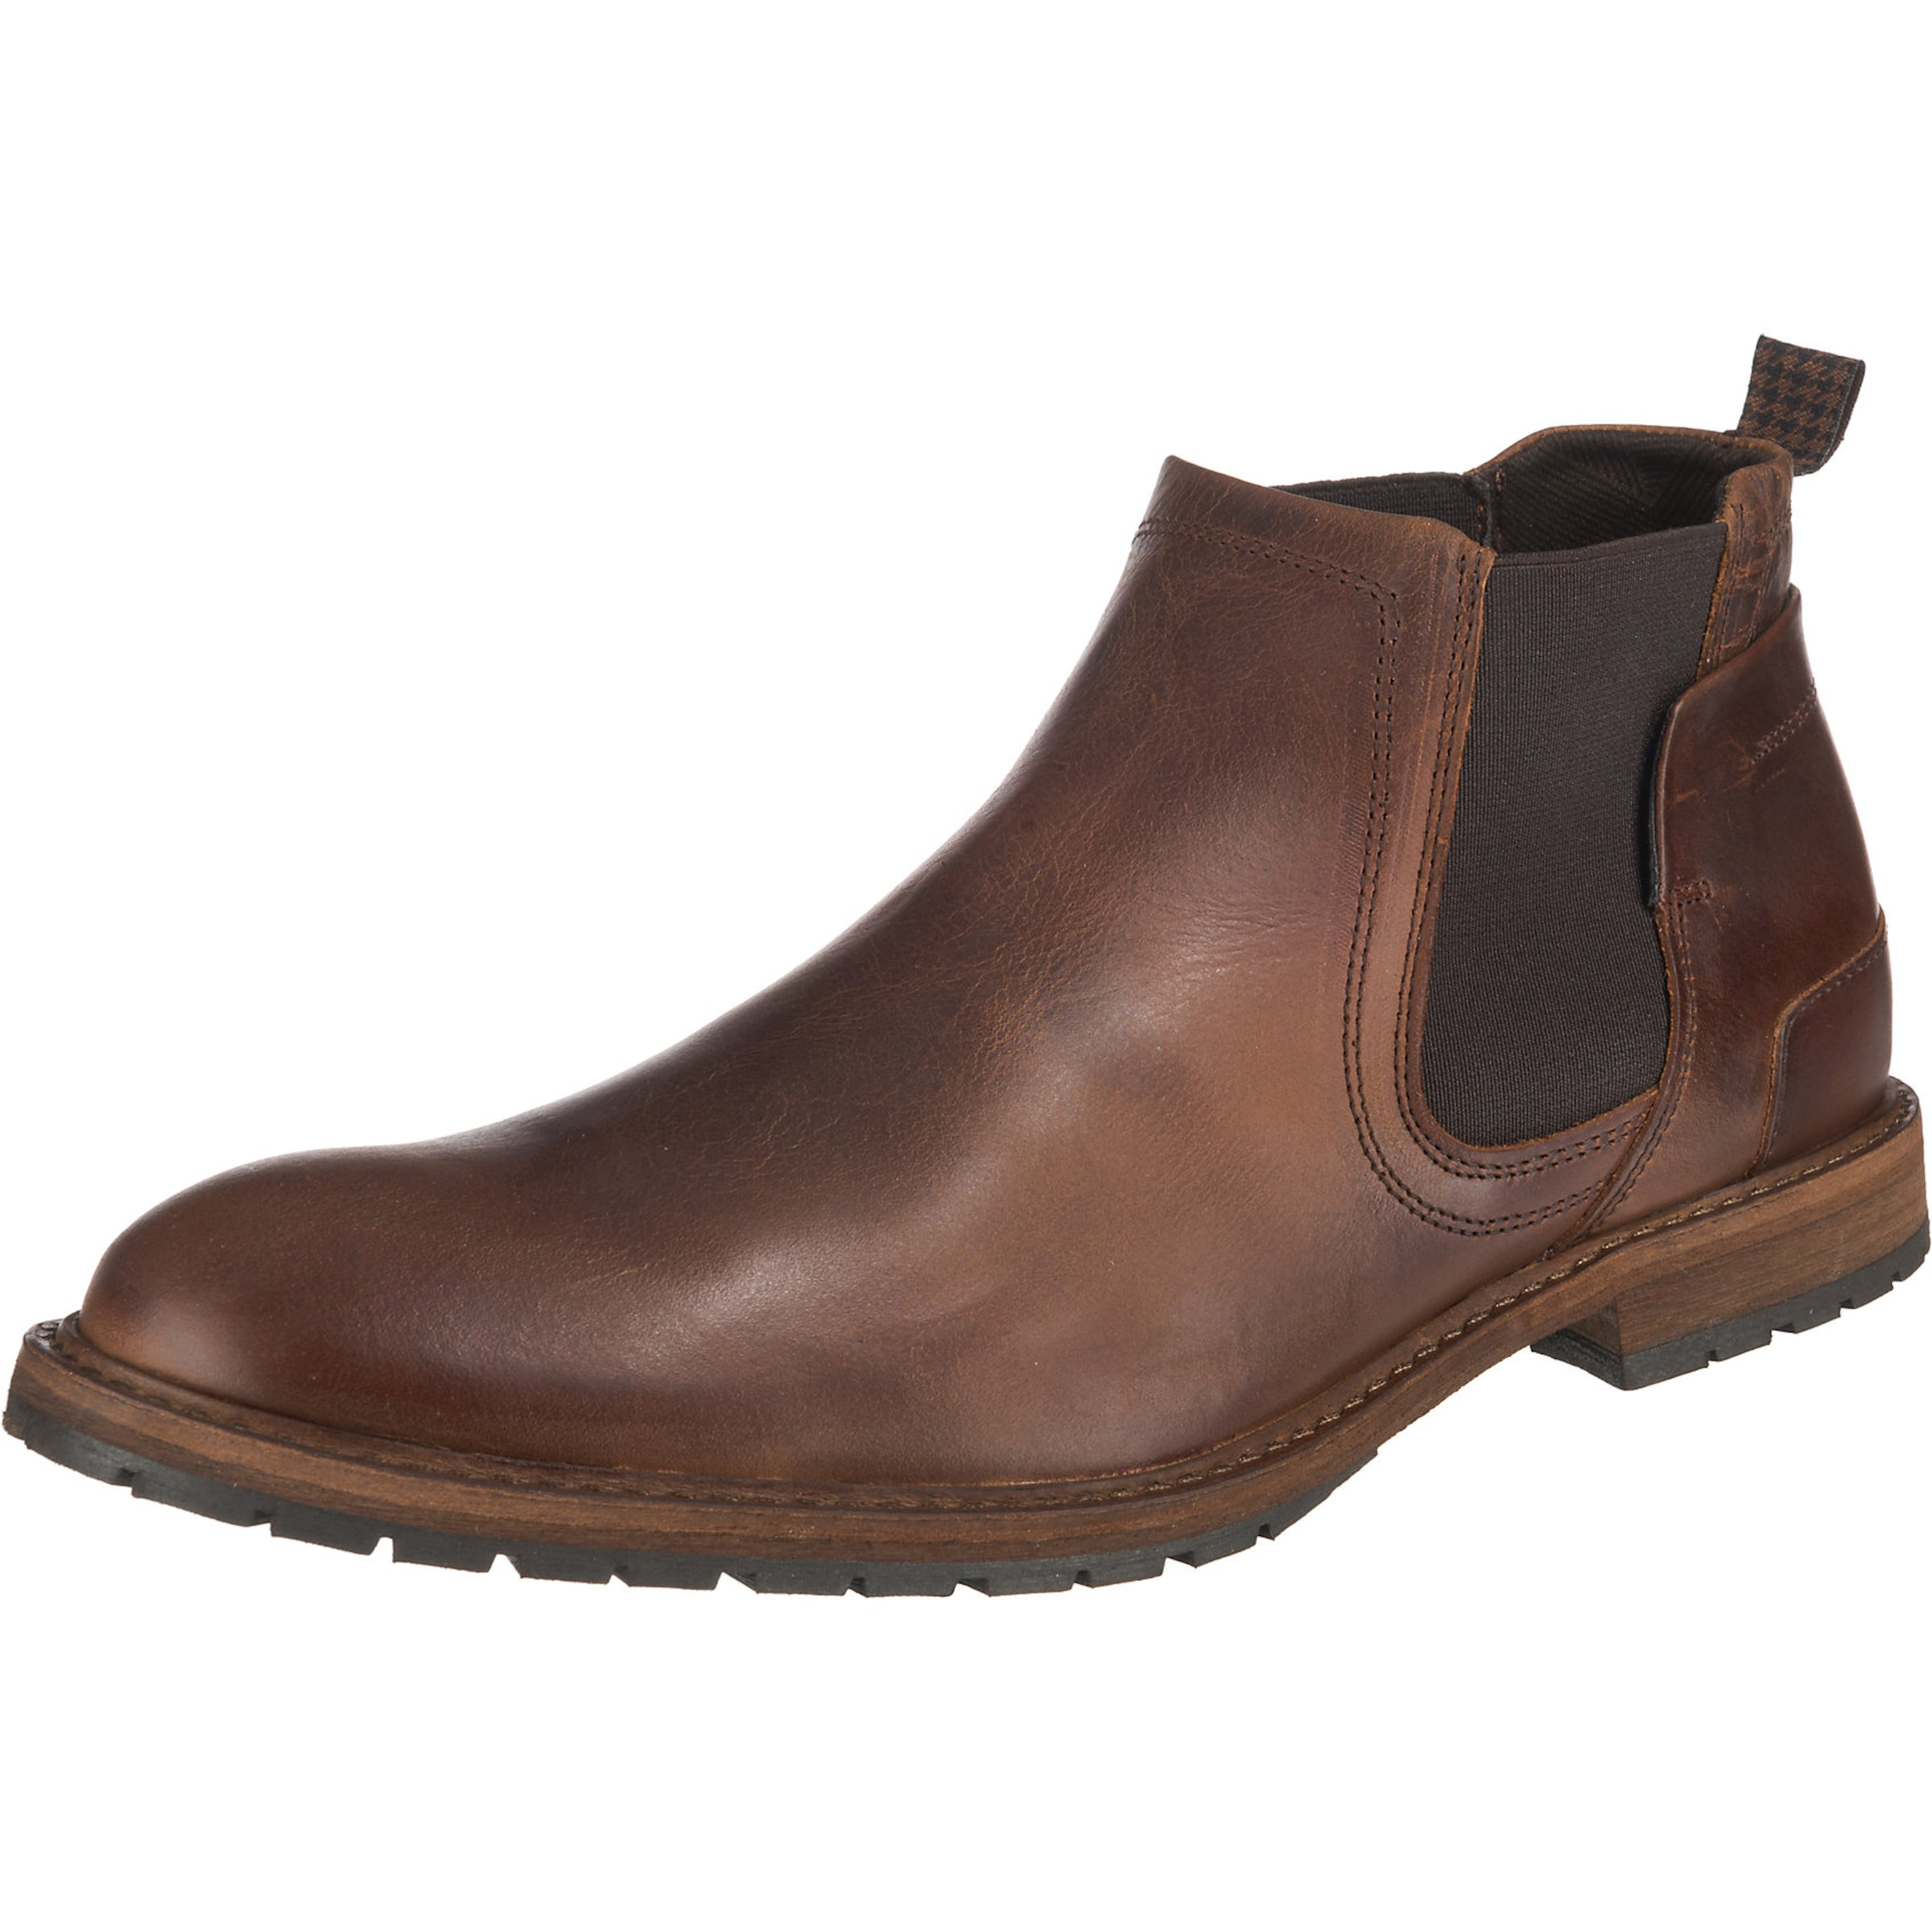 Vesterbro Boots Chelsea In Leder Braun Paul ED9be2IWHY